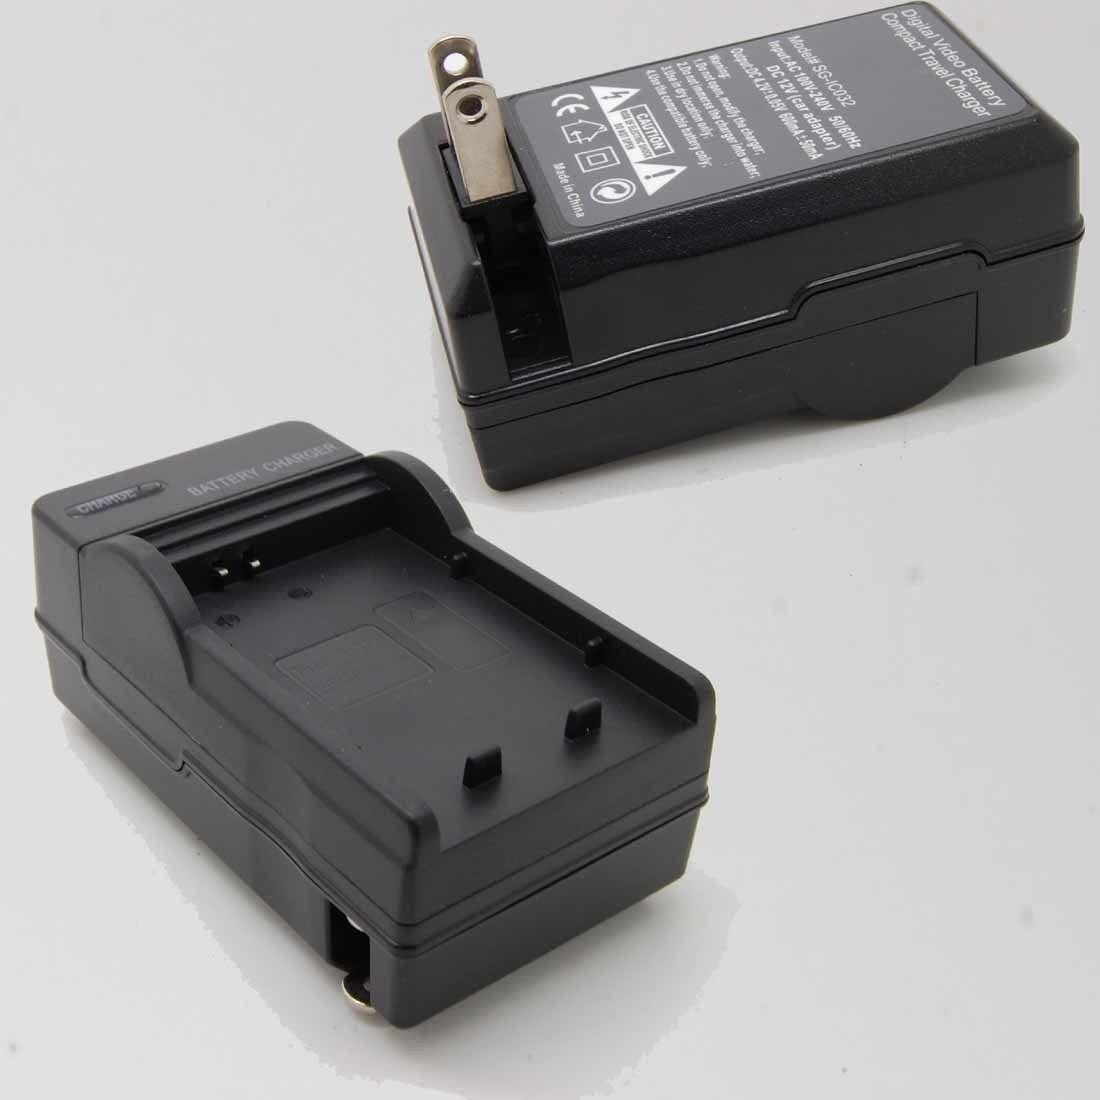 Battery Charger For Gopro Hd Hero 3 Hero3 Camera Ahdbt-301 Ahdbt-201 Battery Sx